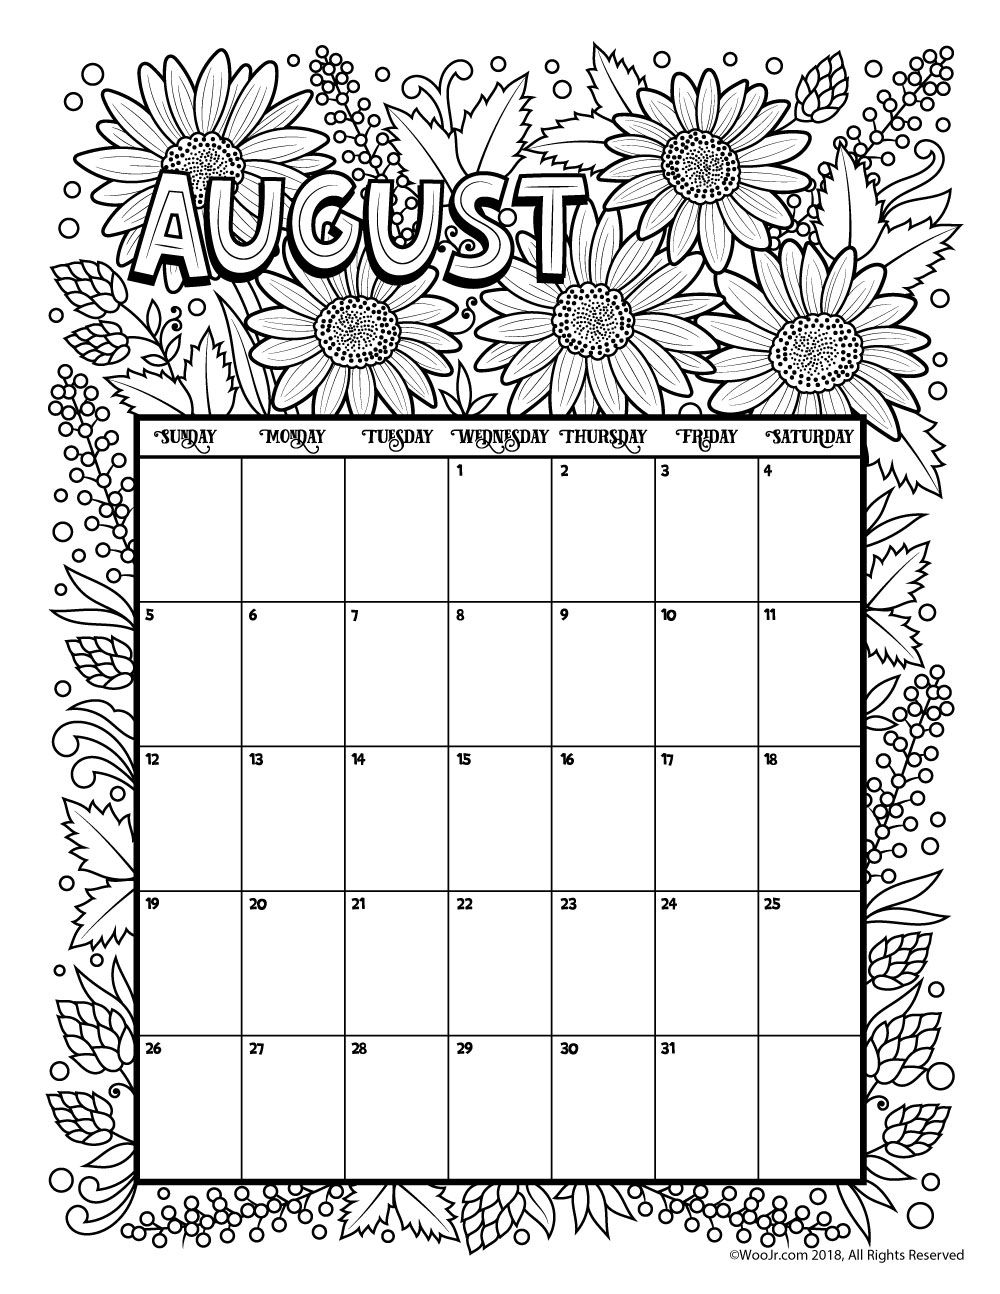 august 2018 coloring calendar page kid activities bullet journals Calendar August 2018 Printable Zodiac erdferdf